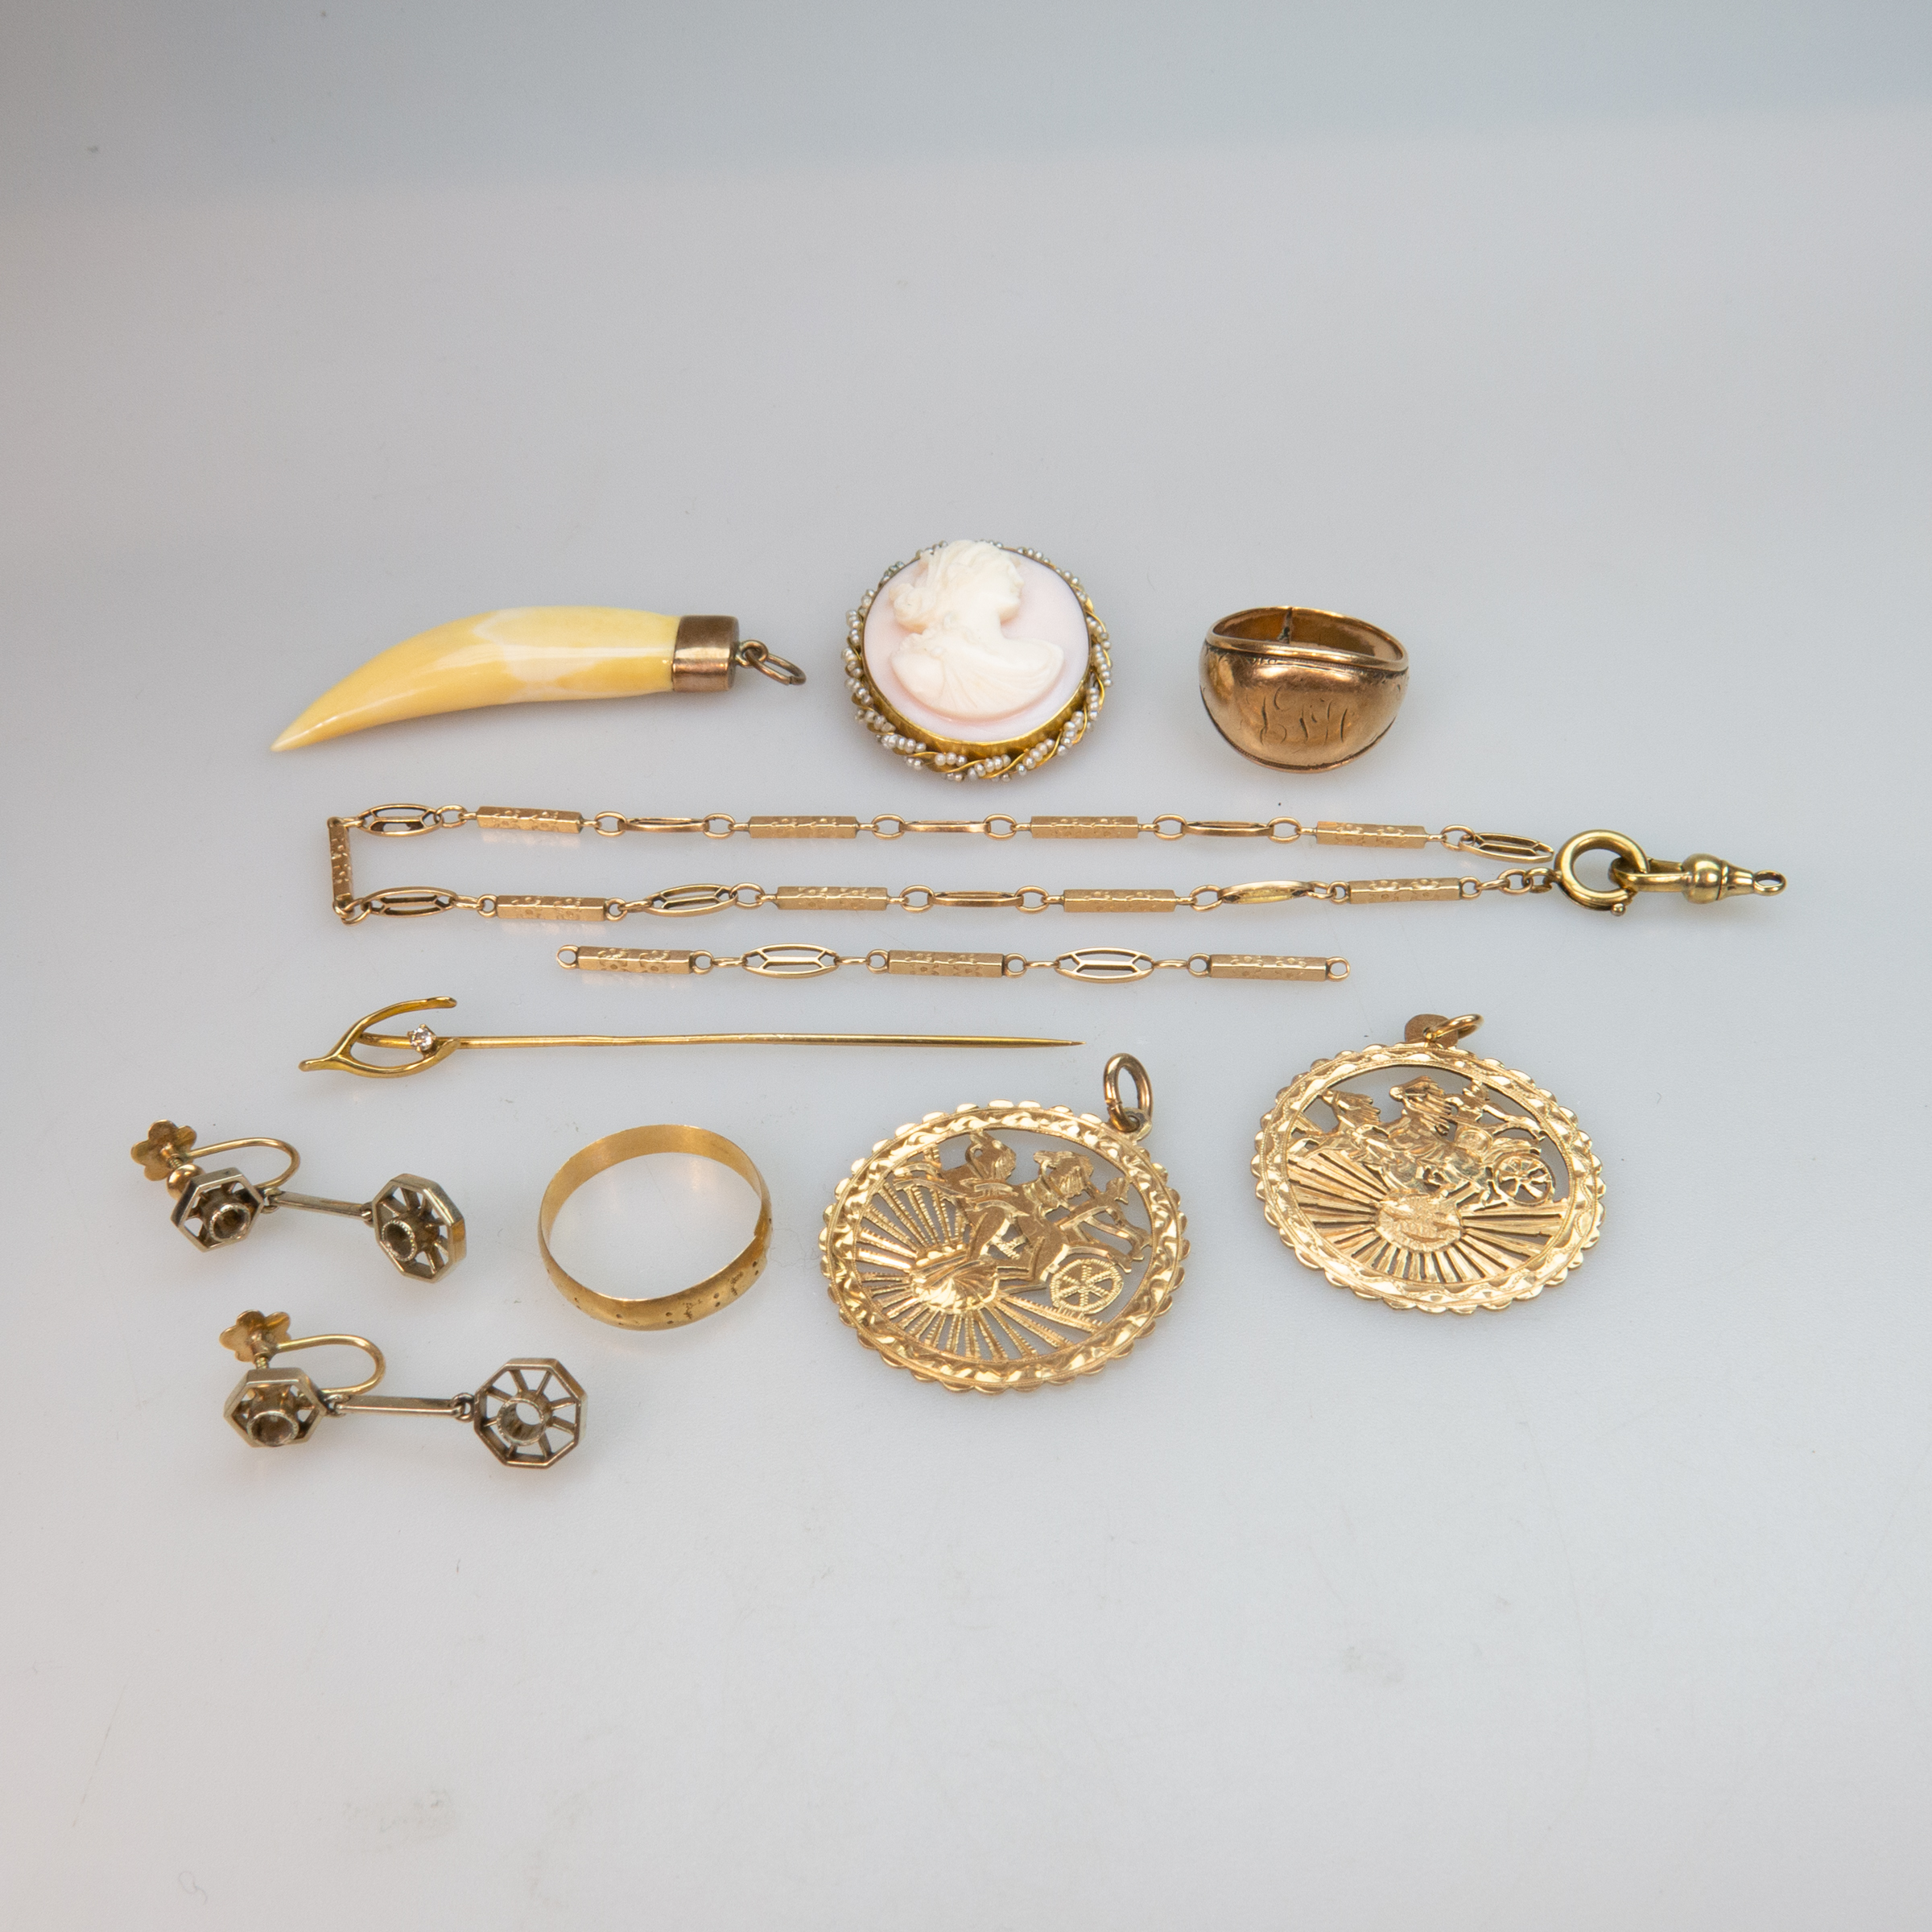 Small Quantity Of Various Gold Jewellery